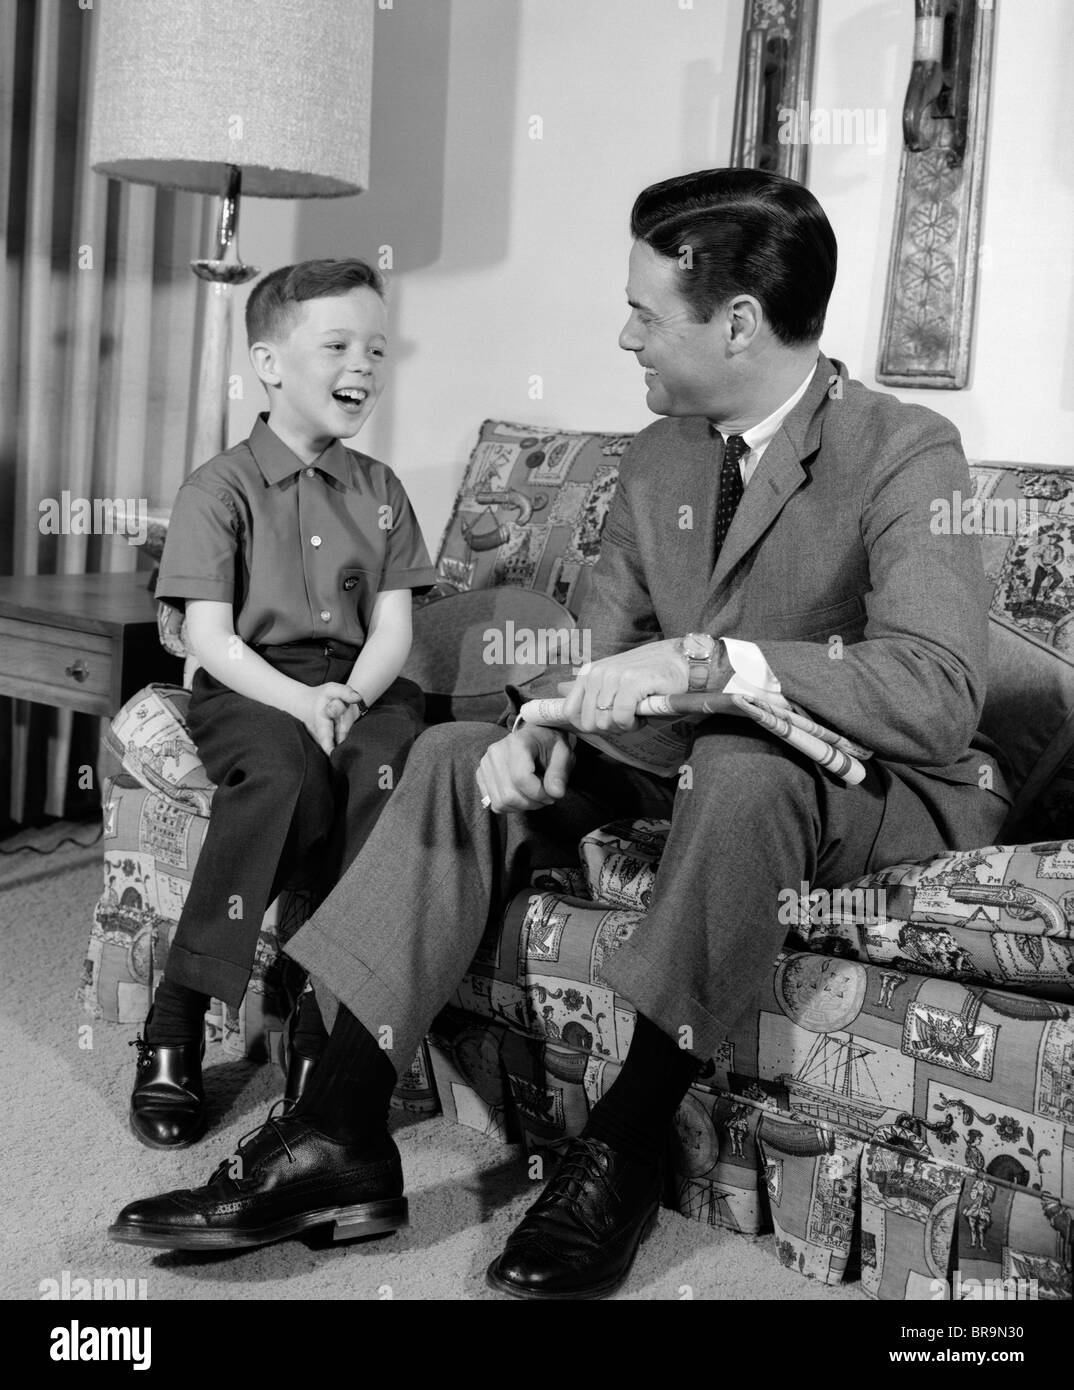 1960s BOY SITTING ON COUCH SMILING LAUGHING WITH DAD - Stock Image